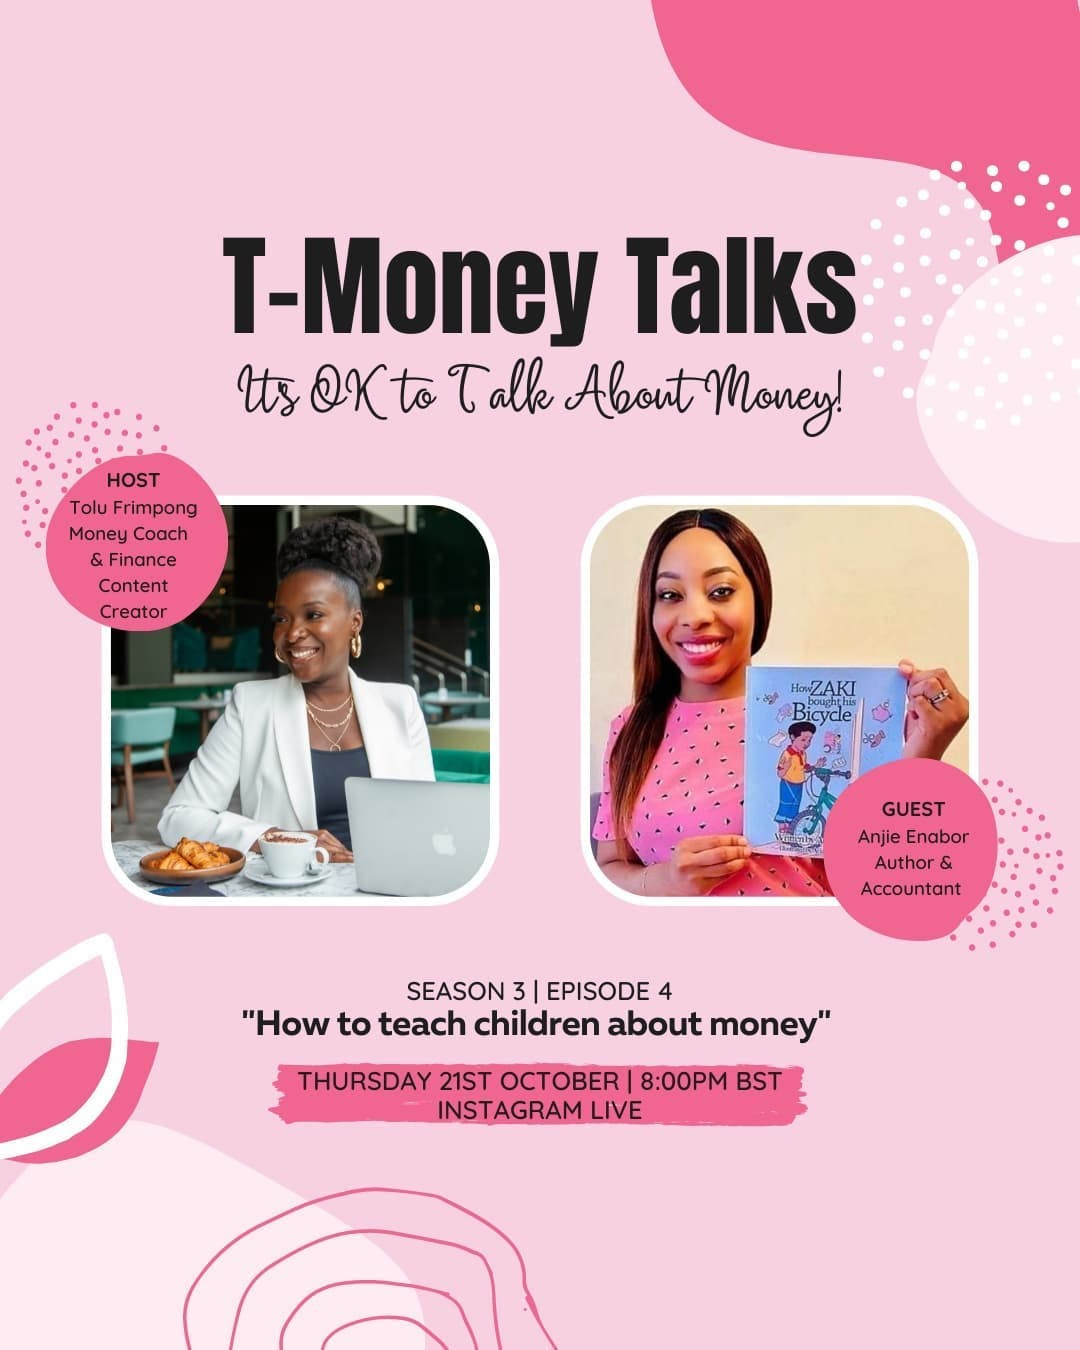 """I'm excited to announce that tonight at 8pm BST, I'll be joined by Anjie Enabor @zakis_money_adventures to discuss how to teach children about money.  Anji is a Chartered Accountant passionate about financial literacy and introducing real life financial principles to children from a young age.  She has recently published her first children's book """"How Zaki  bought his bicycle"""" and will be telling us all about it on tonight's live.  Will you be tuning in?   #tmoneytalks #instagramlive #moneylessonsforkids #financialeducationservices #debtfreecommunityuk #ukdebtfreecommunity #debtfreeuk #journeytofinancialIndependence  #FinancialIndependence #personalfinanceuk #financialliteracy #savemoney #journeytofinancialfreedom"""